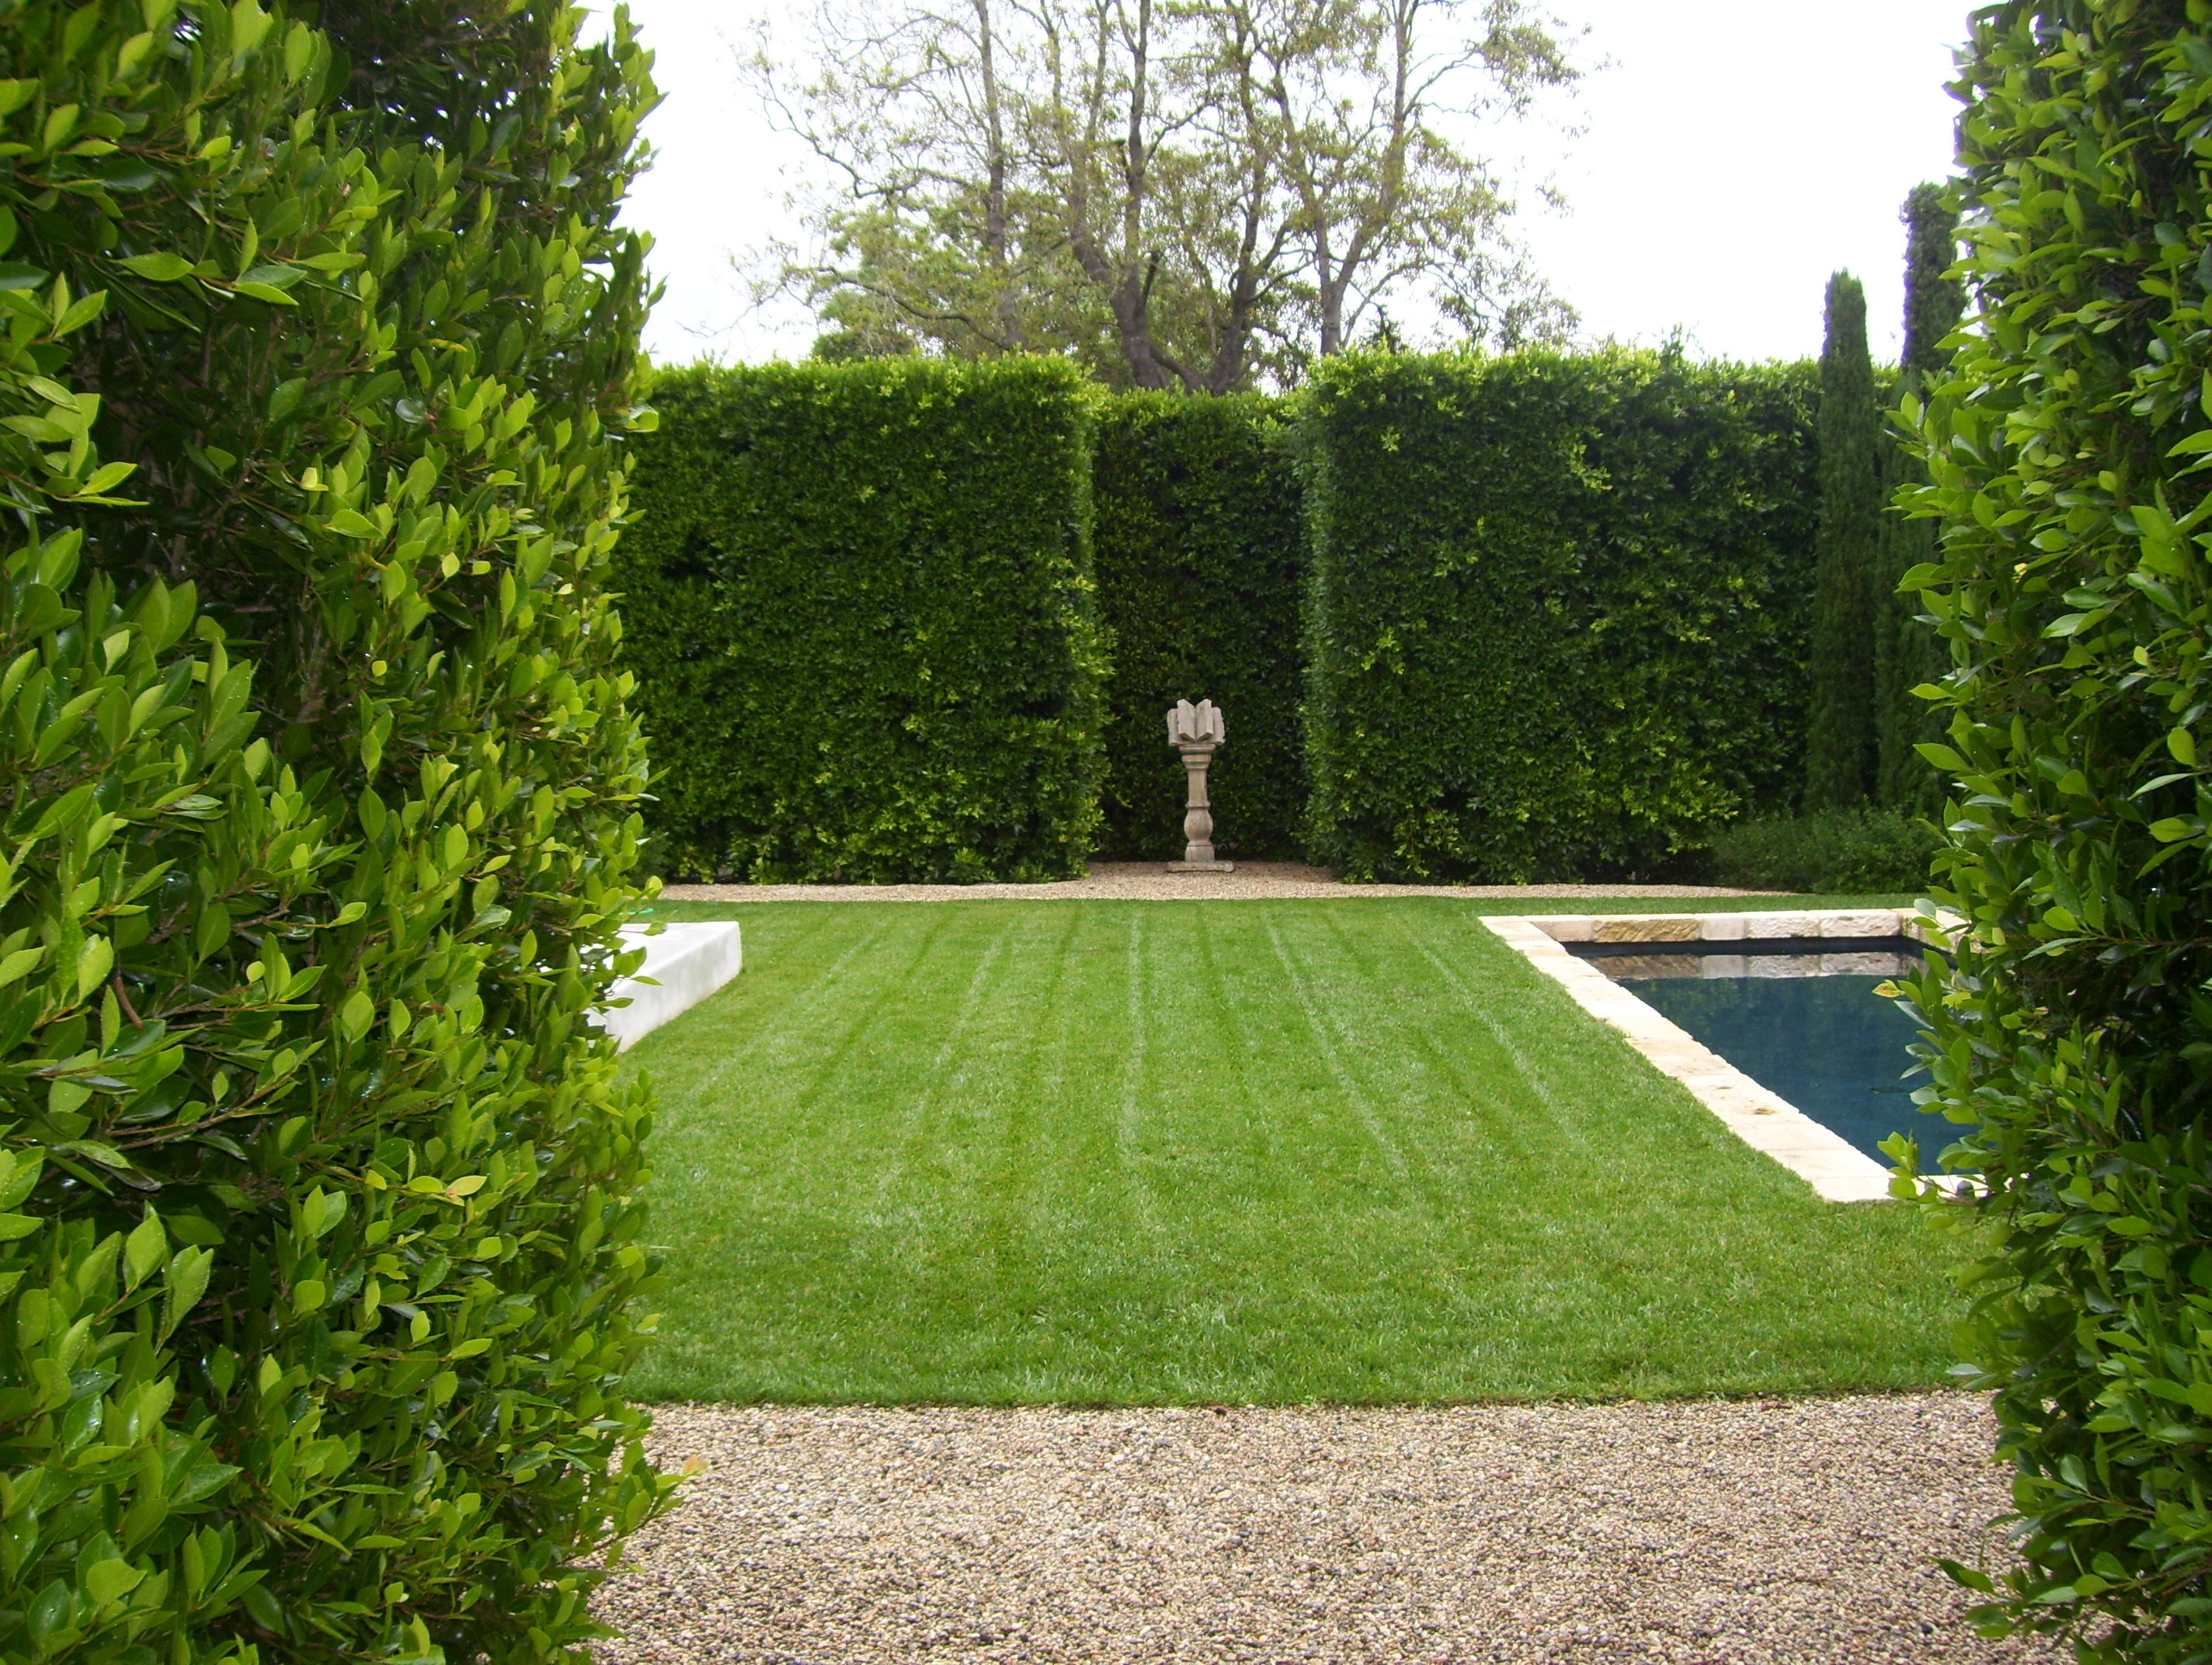 Speciality landscaping landscaping ideas santa barbara for Lawn and garden landscaping ideas